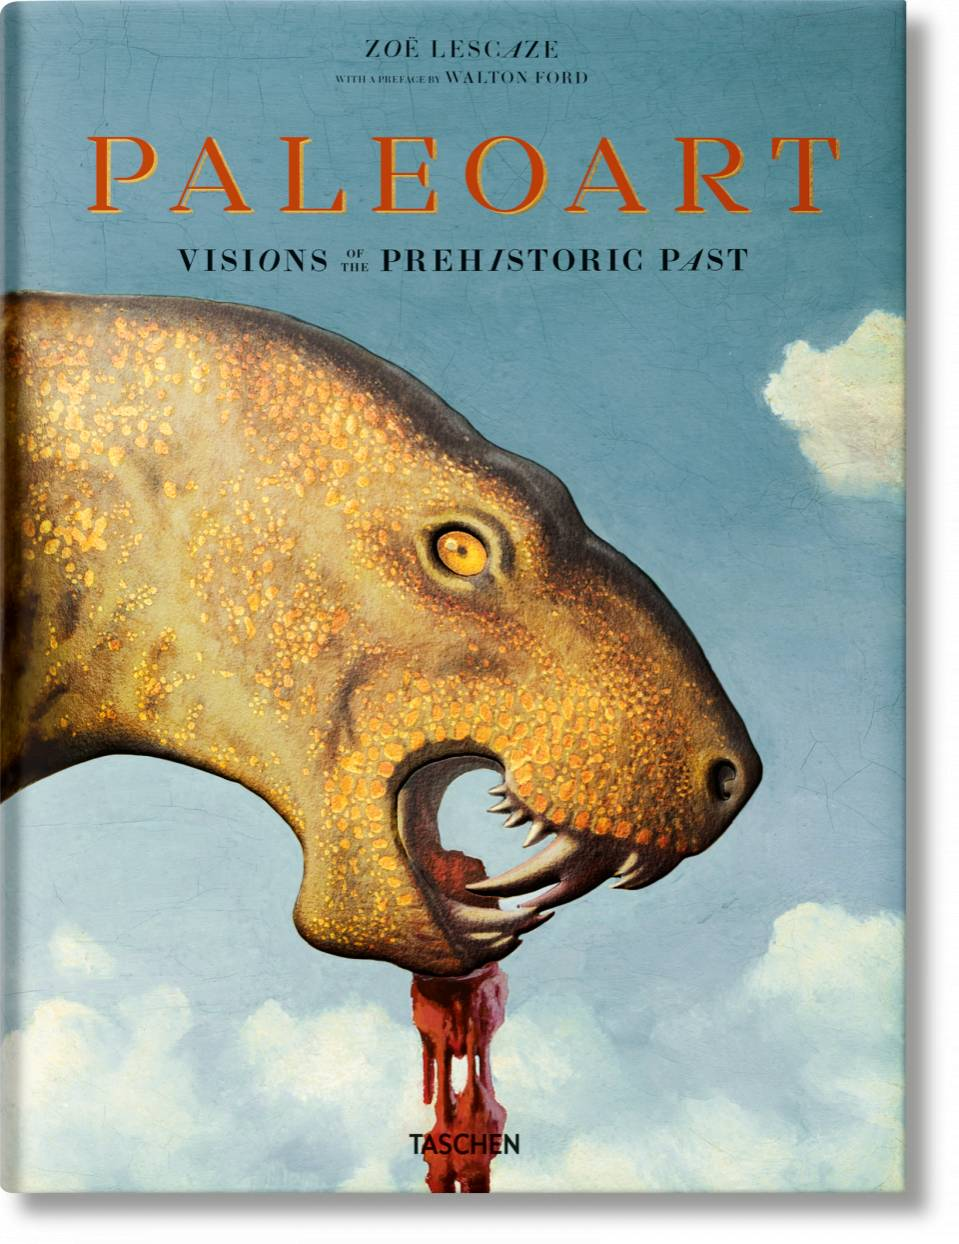 Paleoart. Visions of the Prehistoric Past - image 1